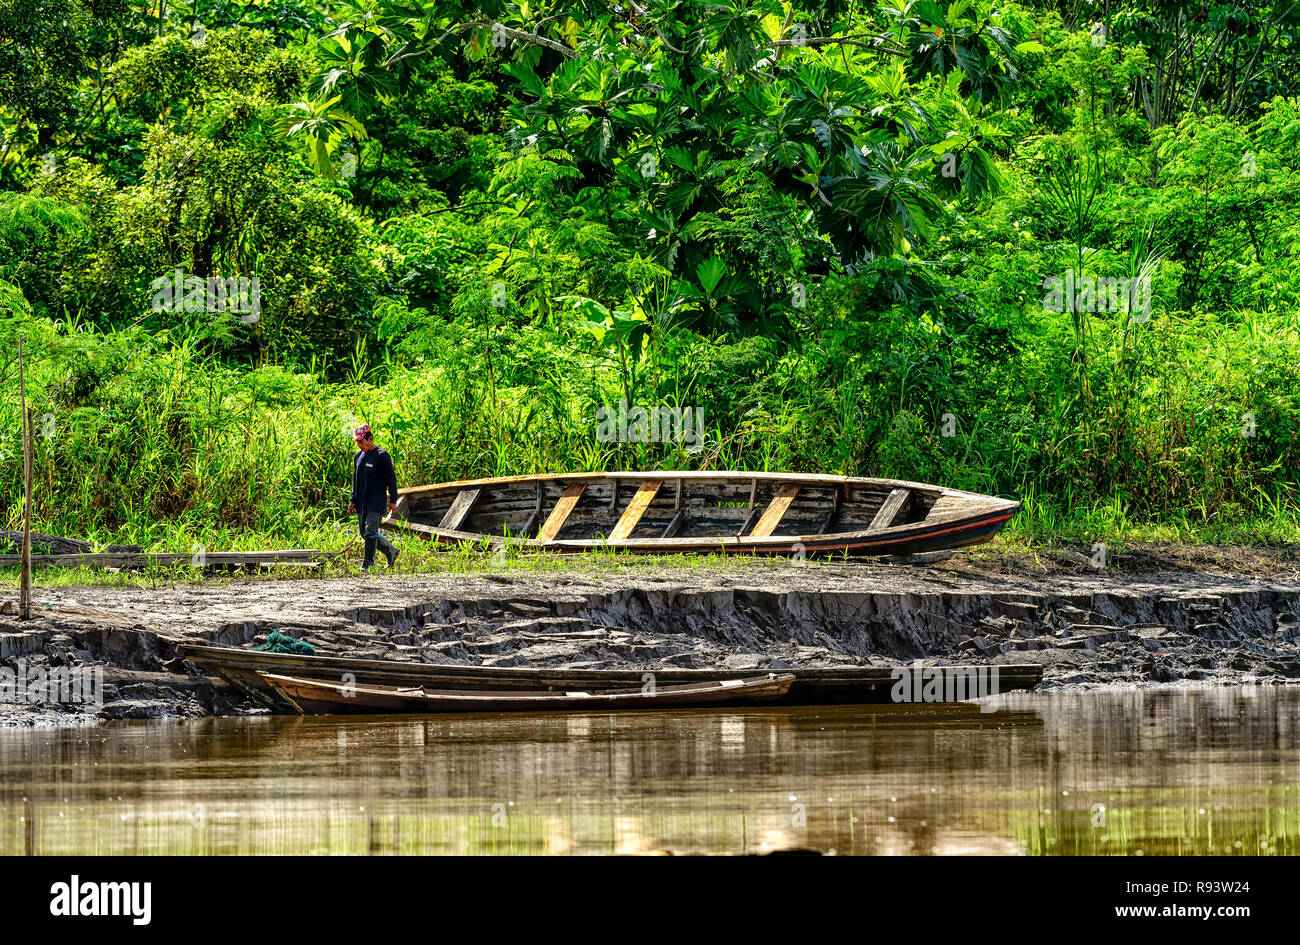 Repairing the Dugout Canoe on the Amazon River Bank - Stock Image